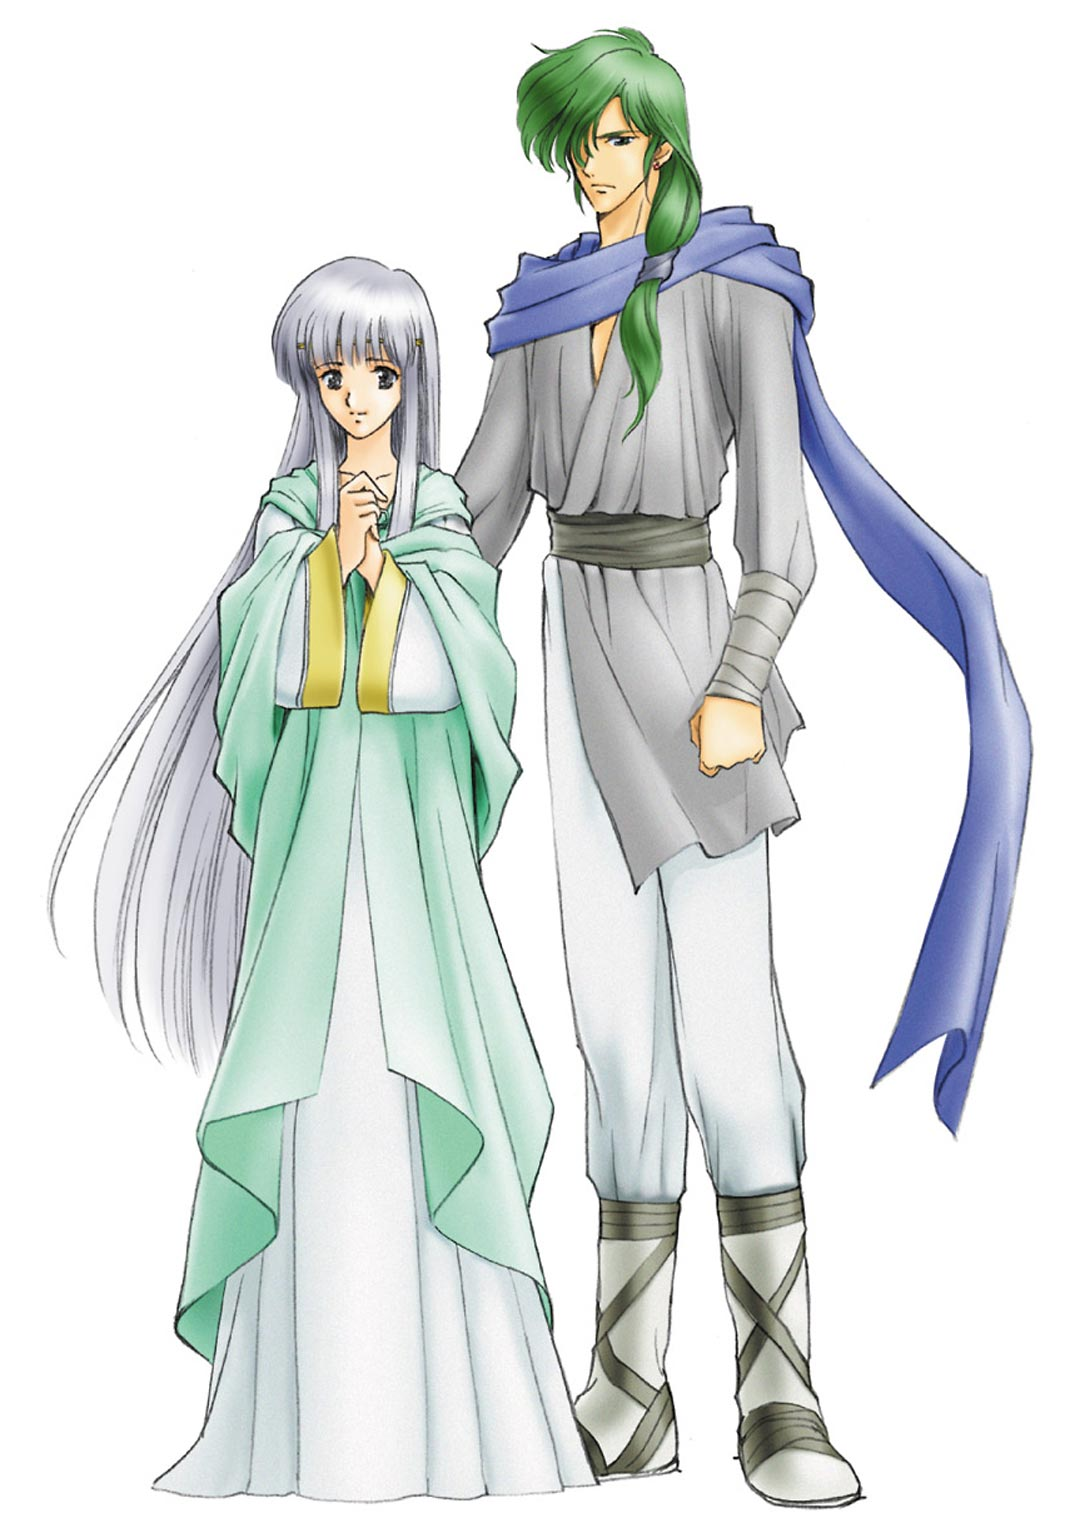 Levin and Yuria